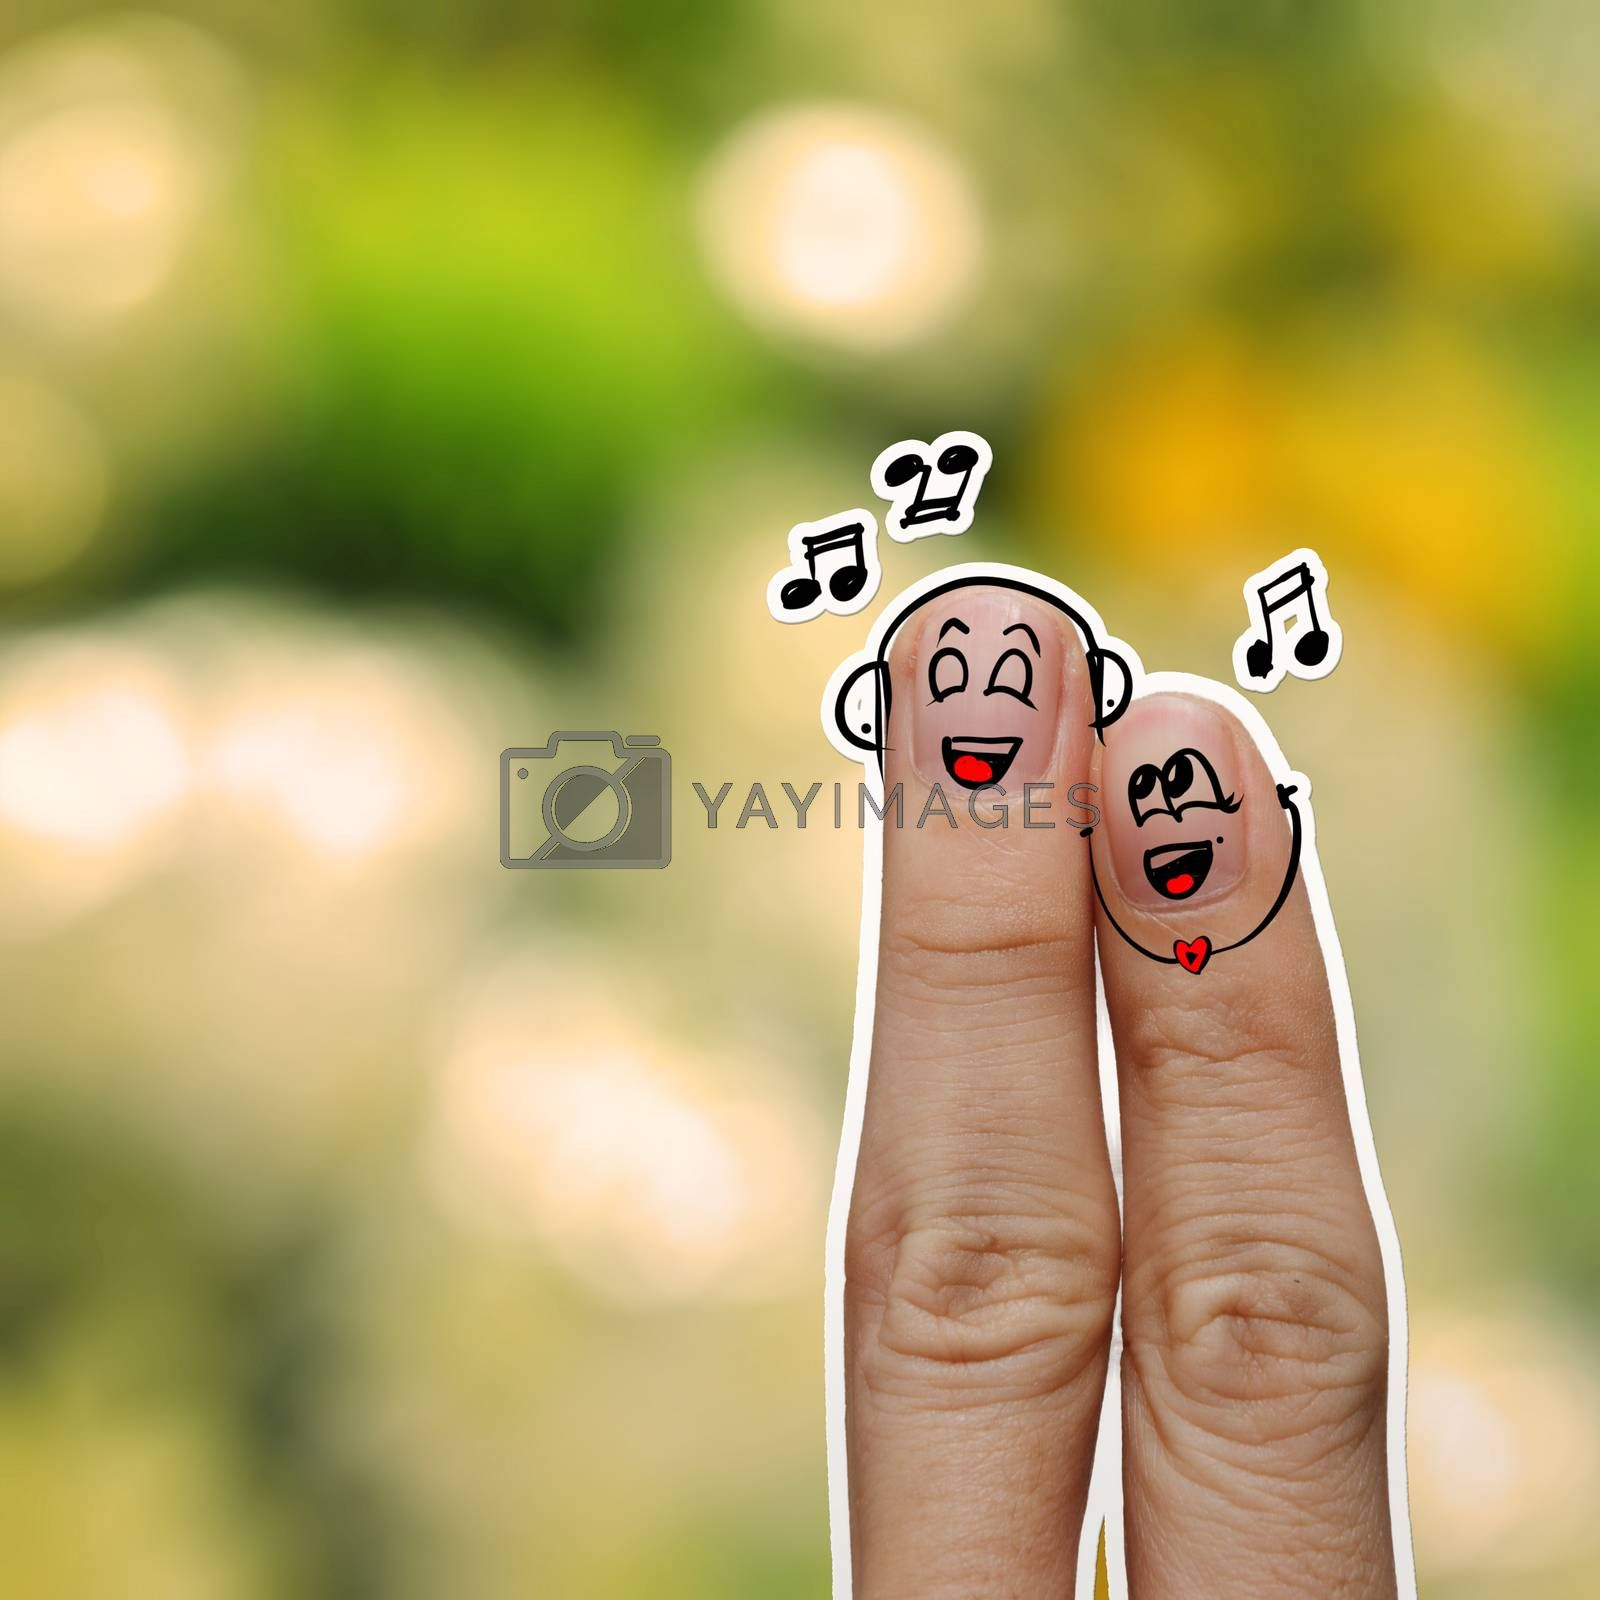 the happy finger couple in love with painted smiley and sing a song on flower nature background